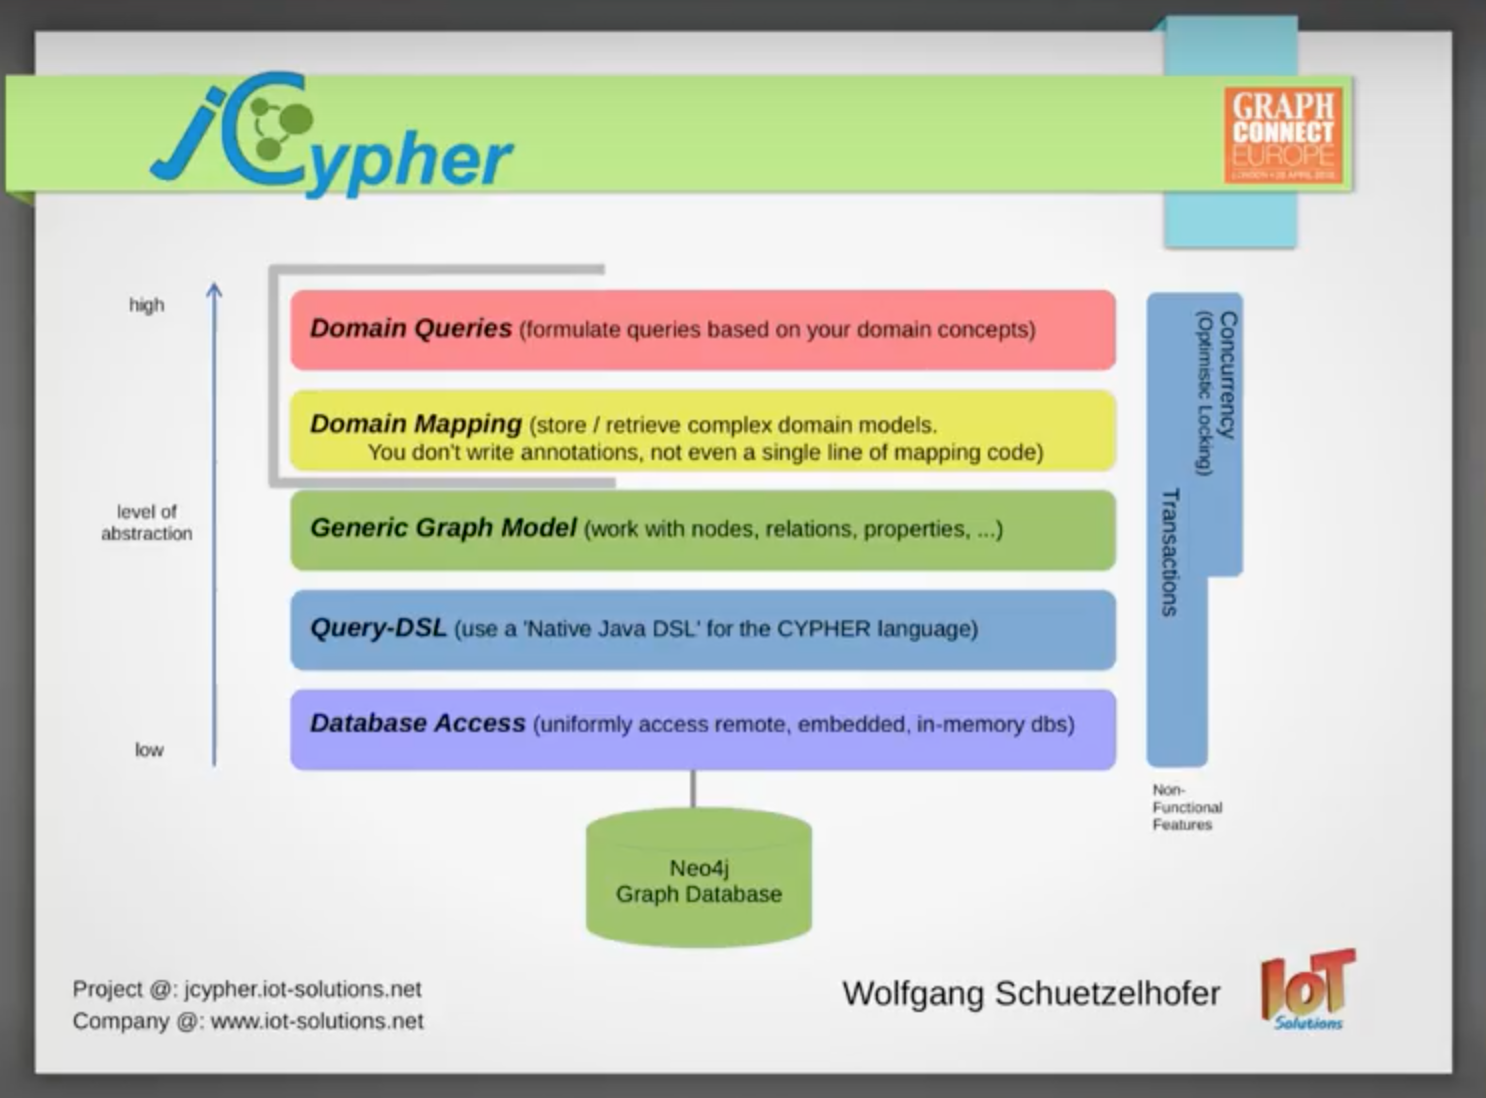 Watch Wolfgang Schützelhofer's presentation on their powerful database design using Neo4j and Java